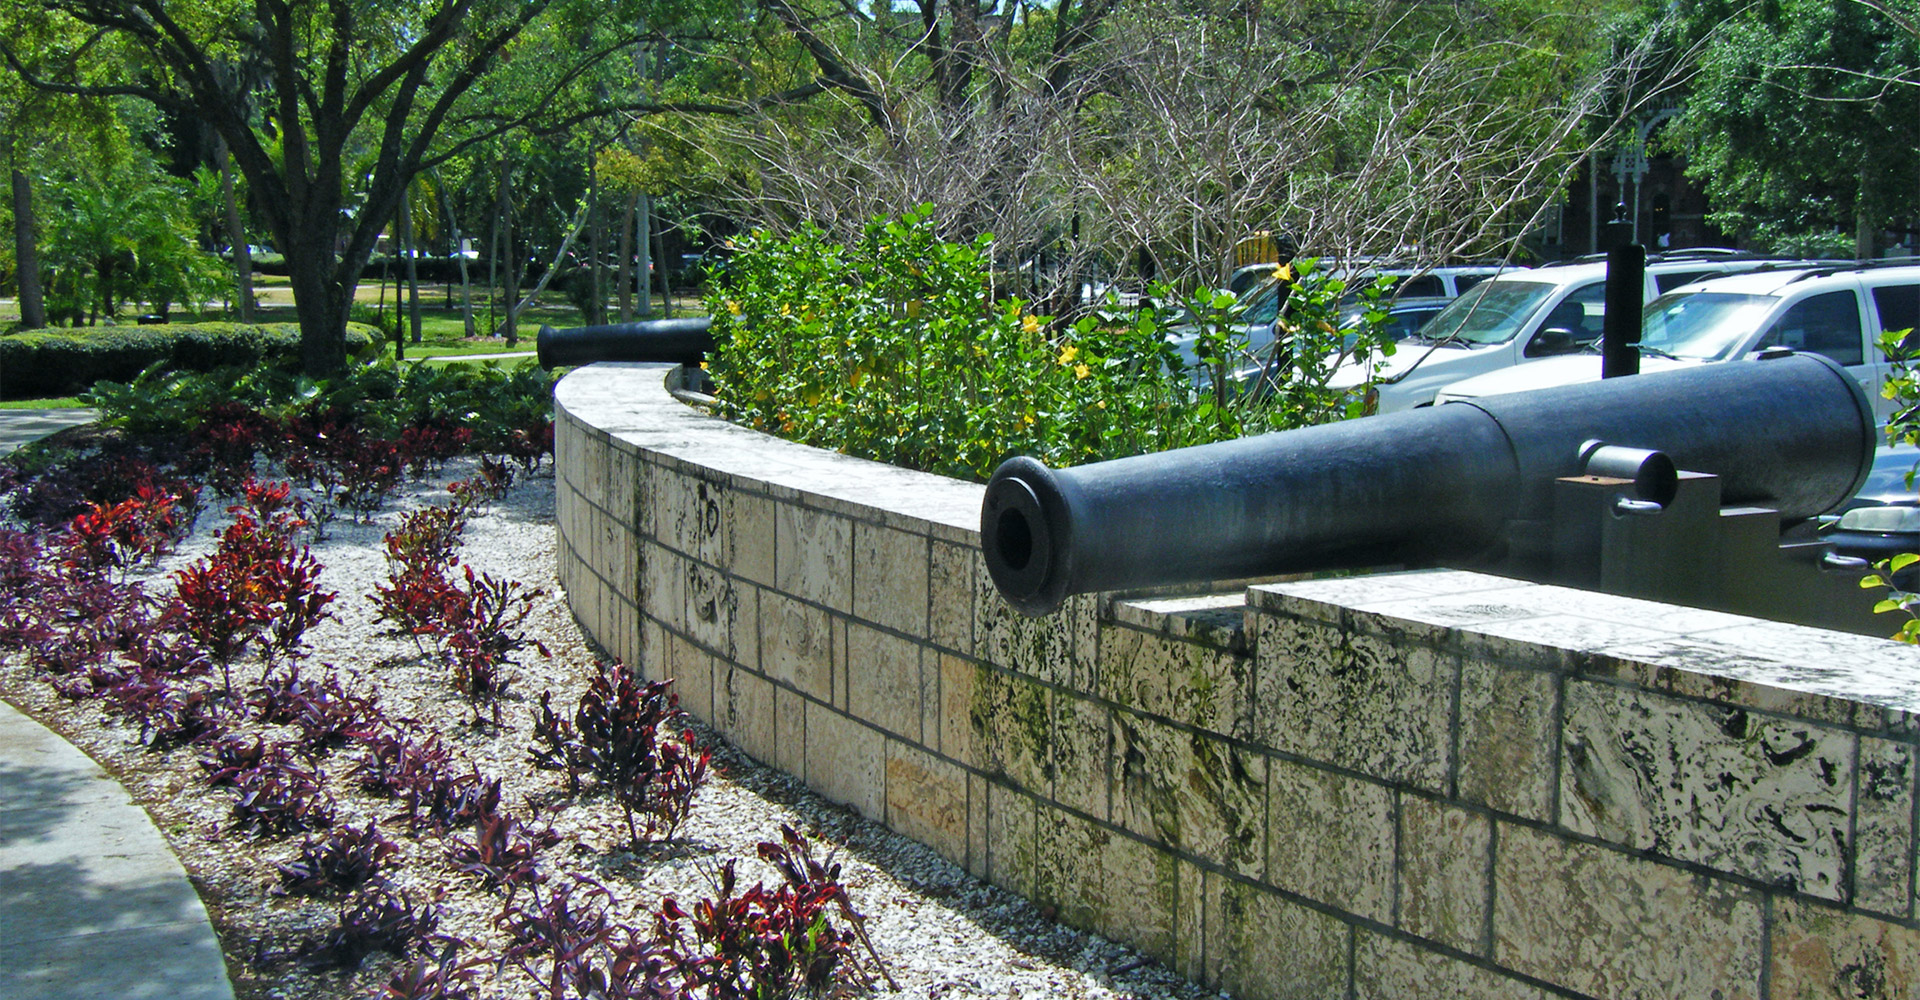 Cannon in Plant Park.